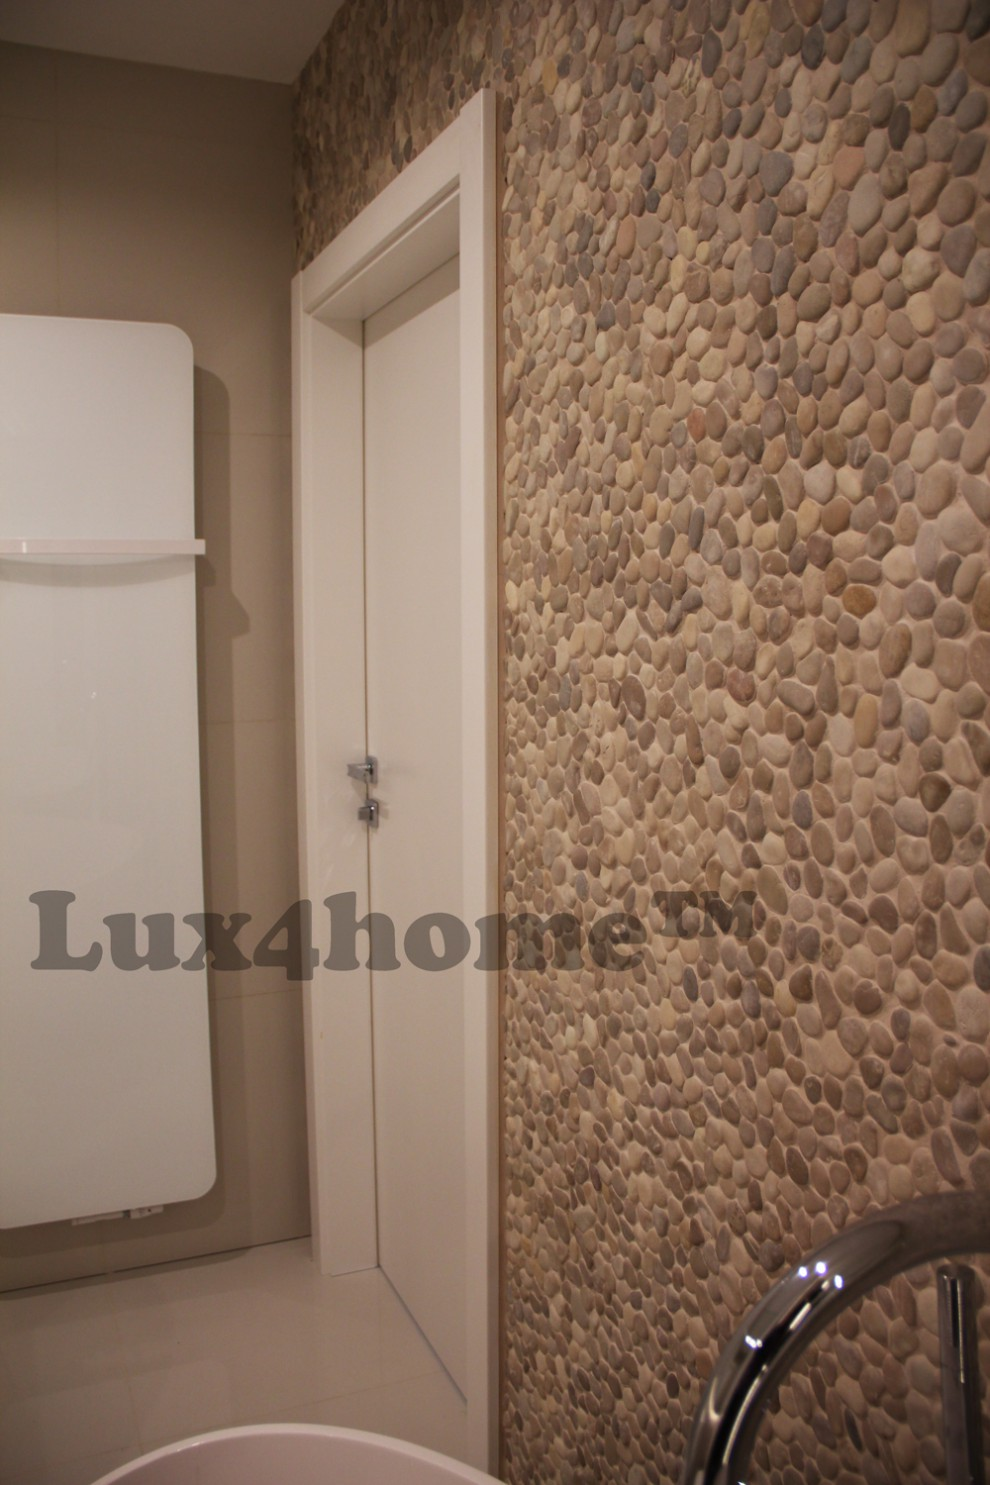 Pebble tiles Maluku Tan-Lux4home(7)